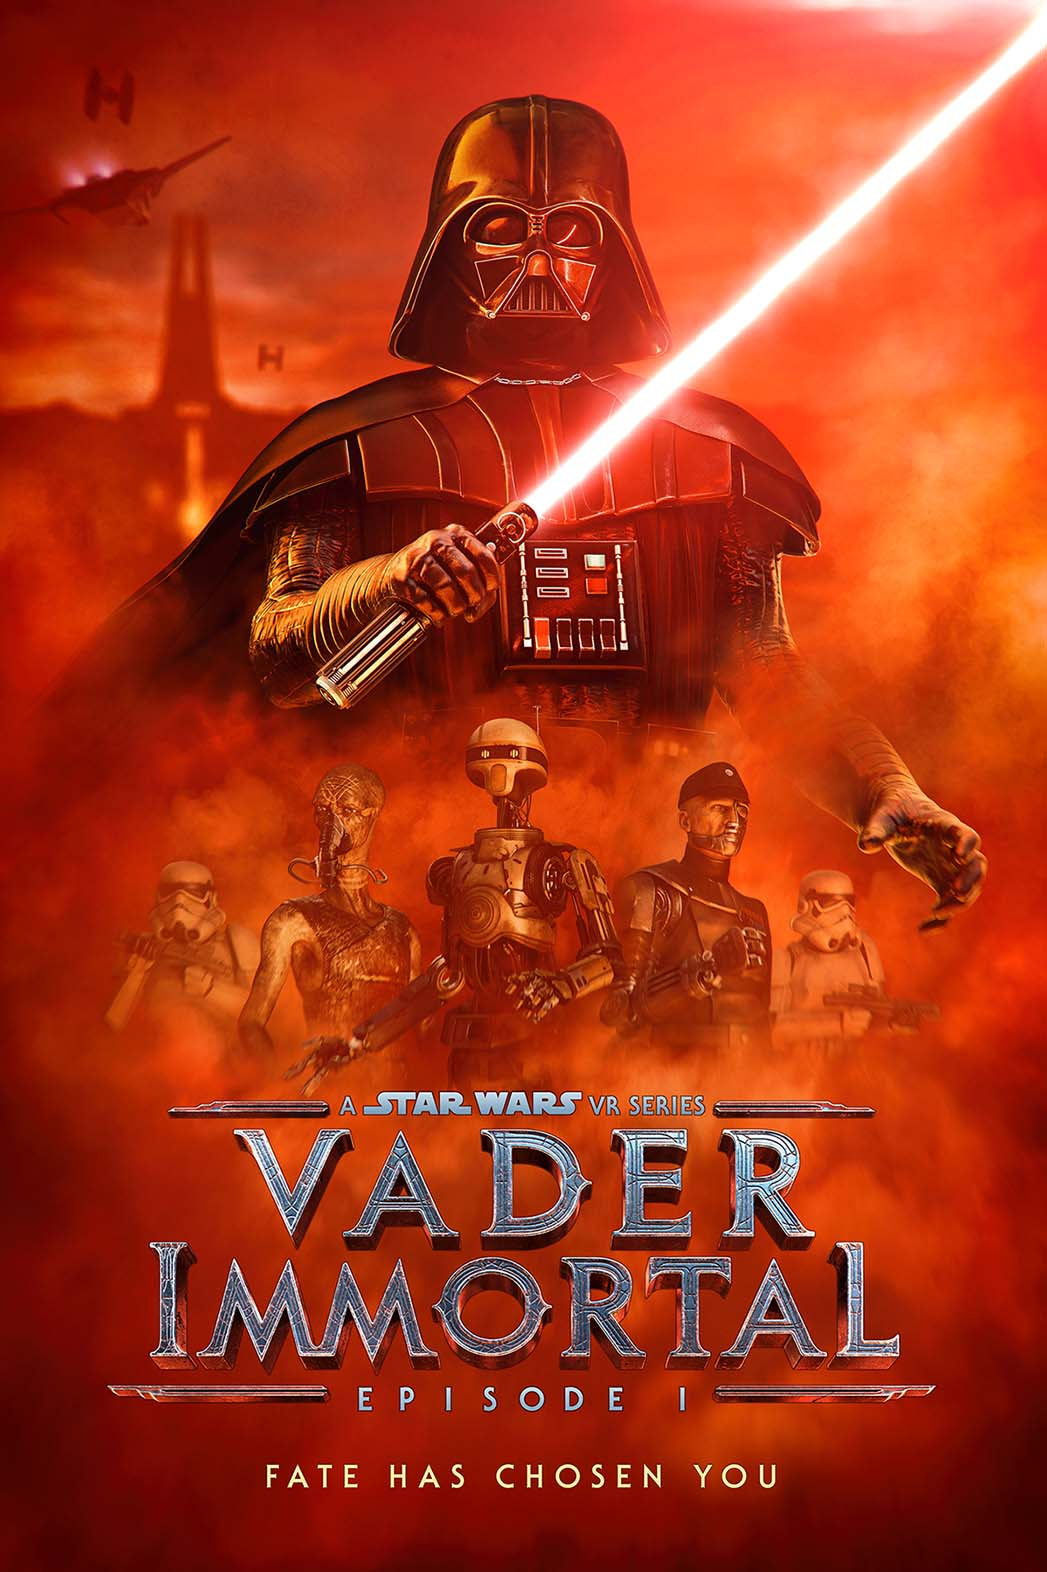 Vader Immortal: A Star Wars VR Series, Episode II